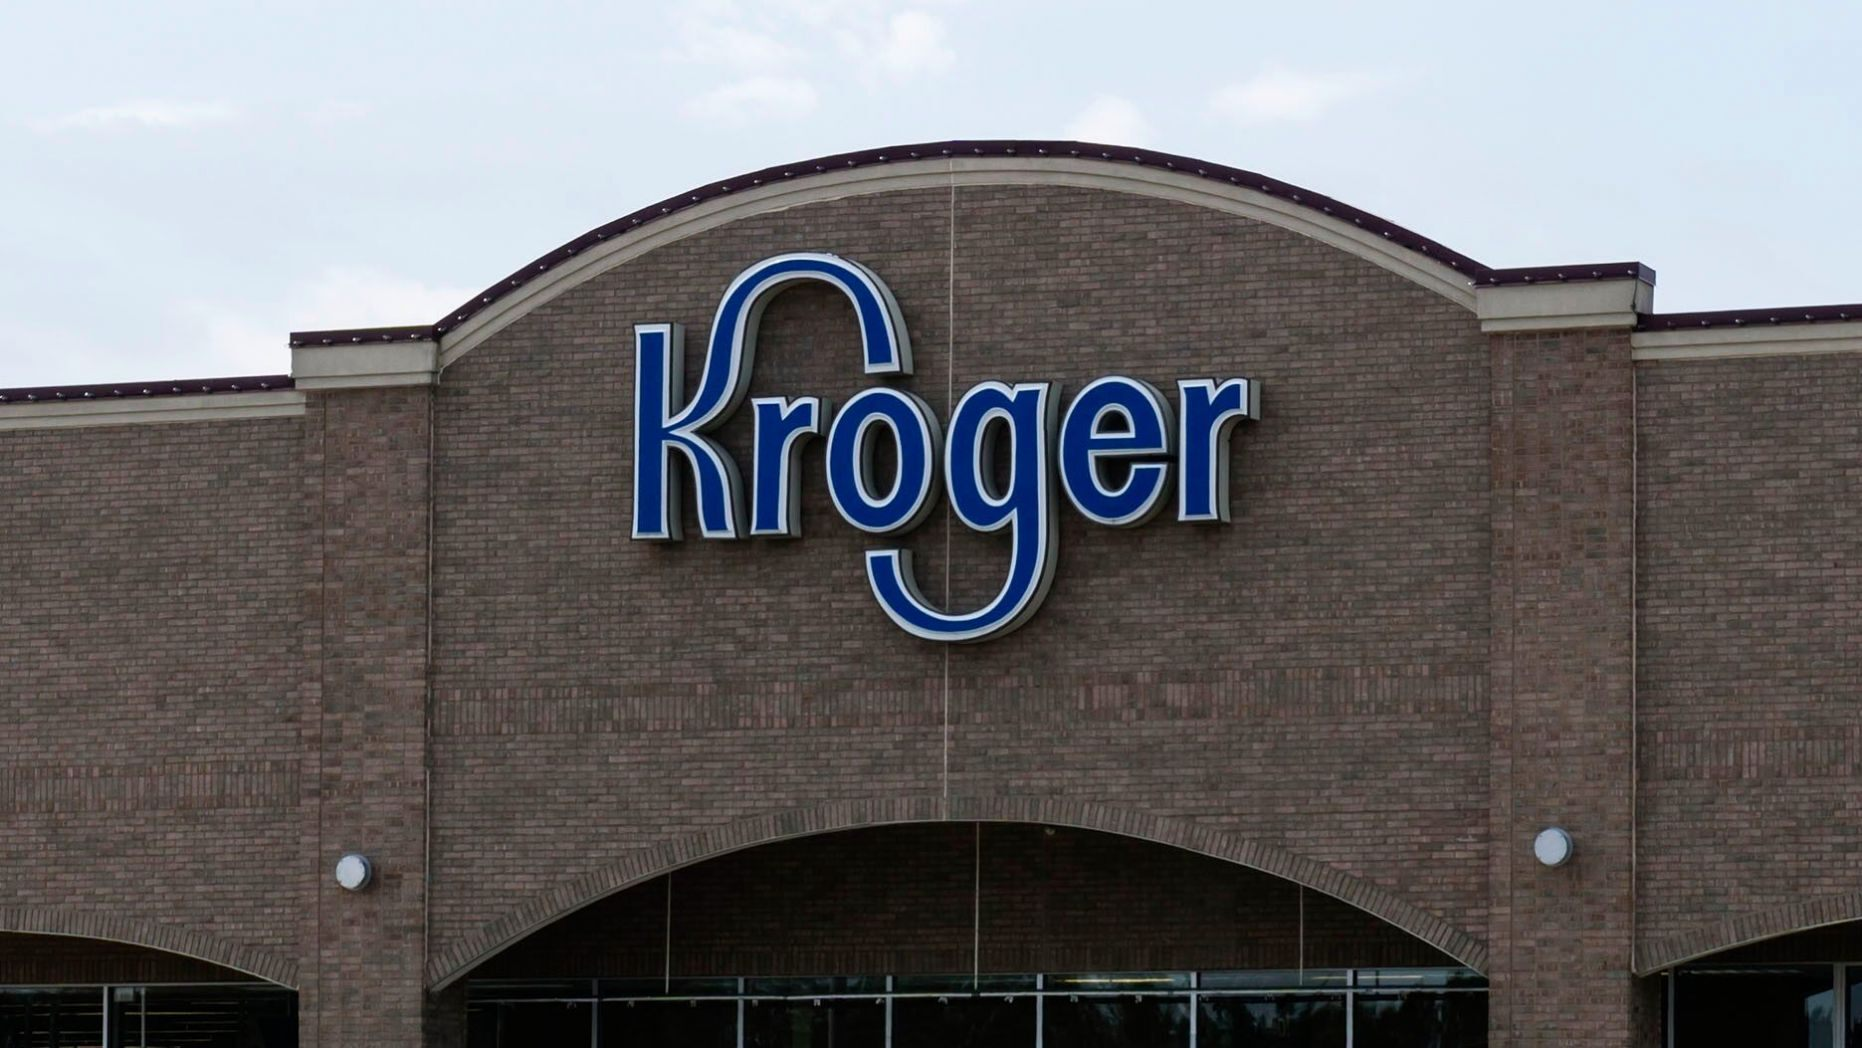 Kroger to continue requiring masks at US supermarkets despite Texas, Mississippi lifting mandates - Fox News